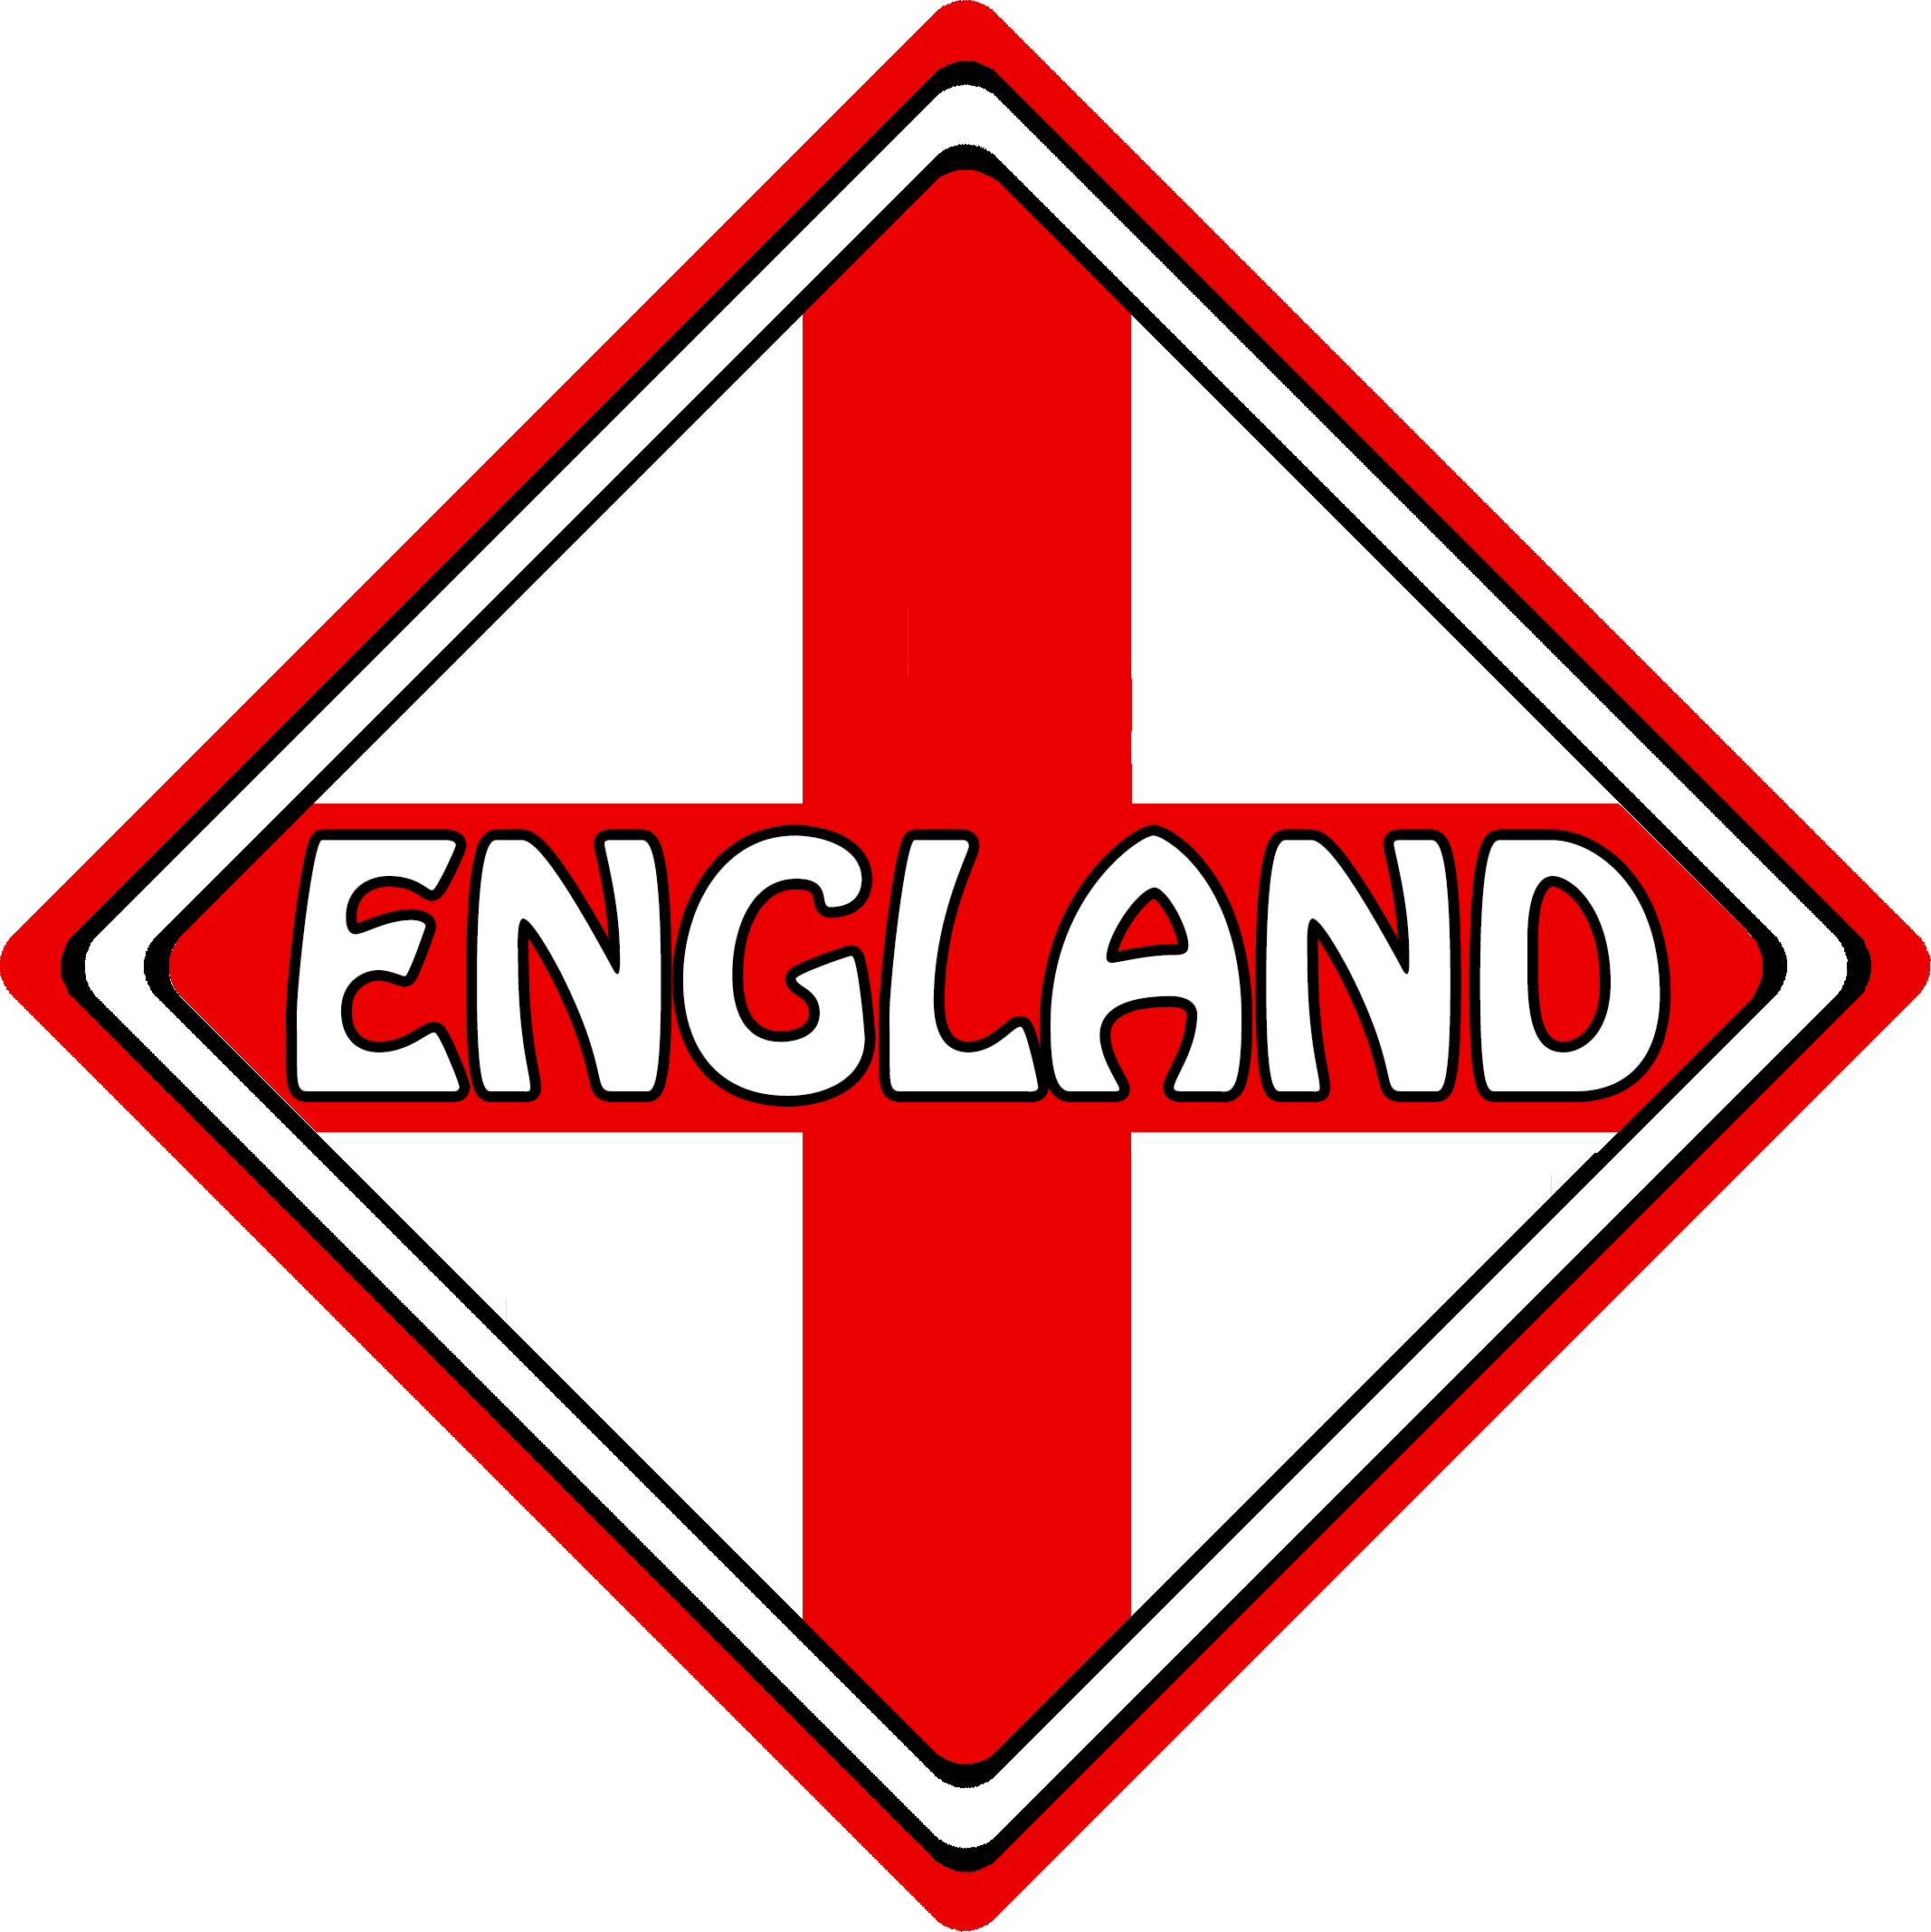 England car sign